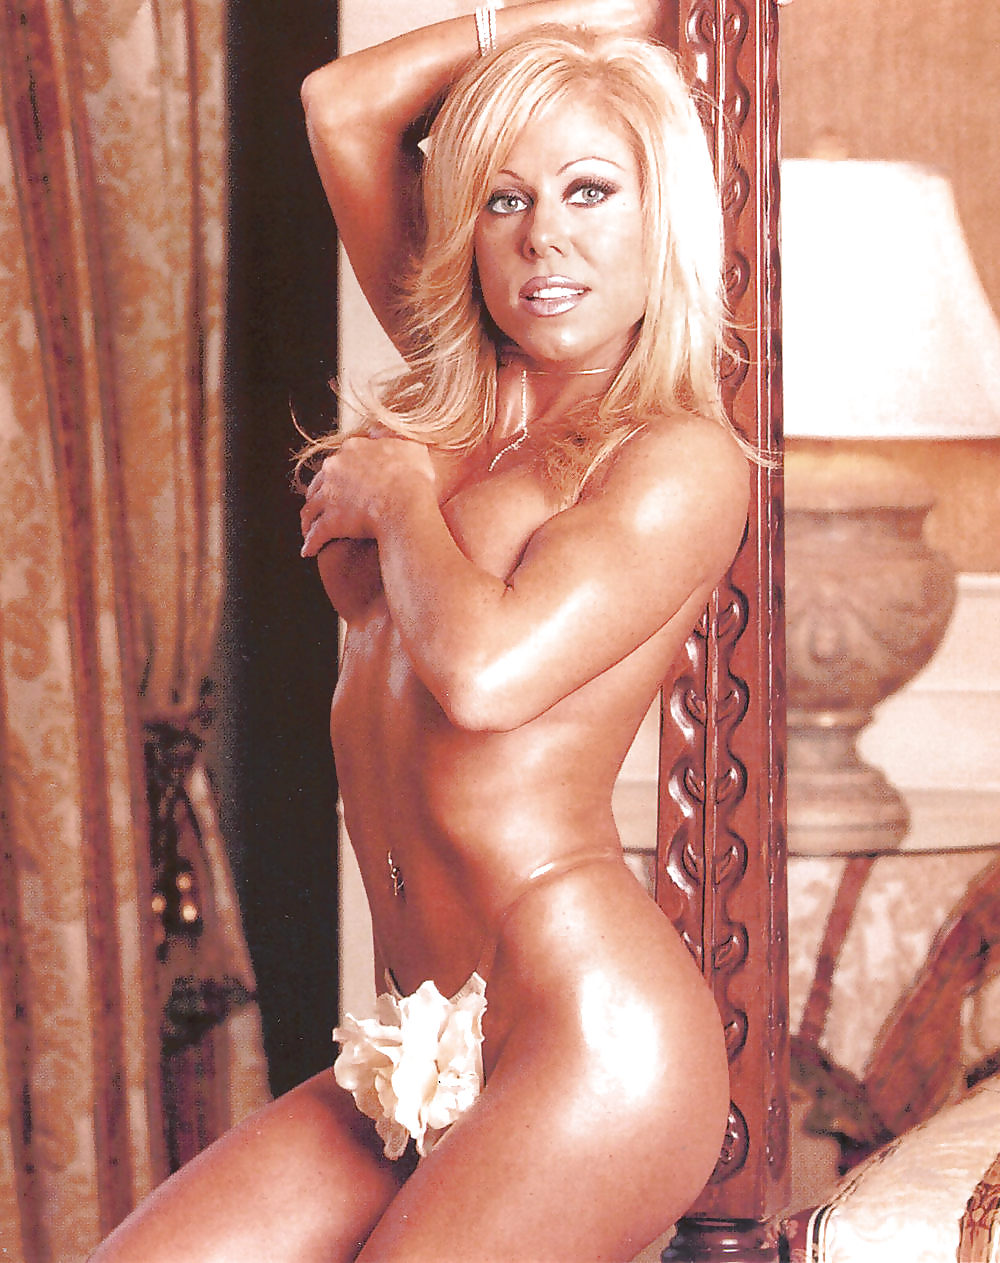 Terri runnels website nude